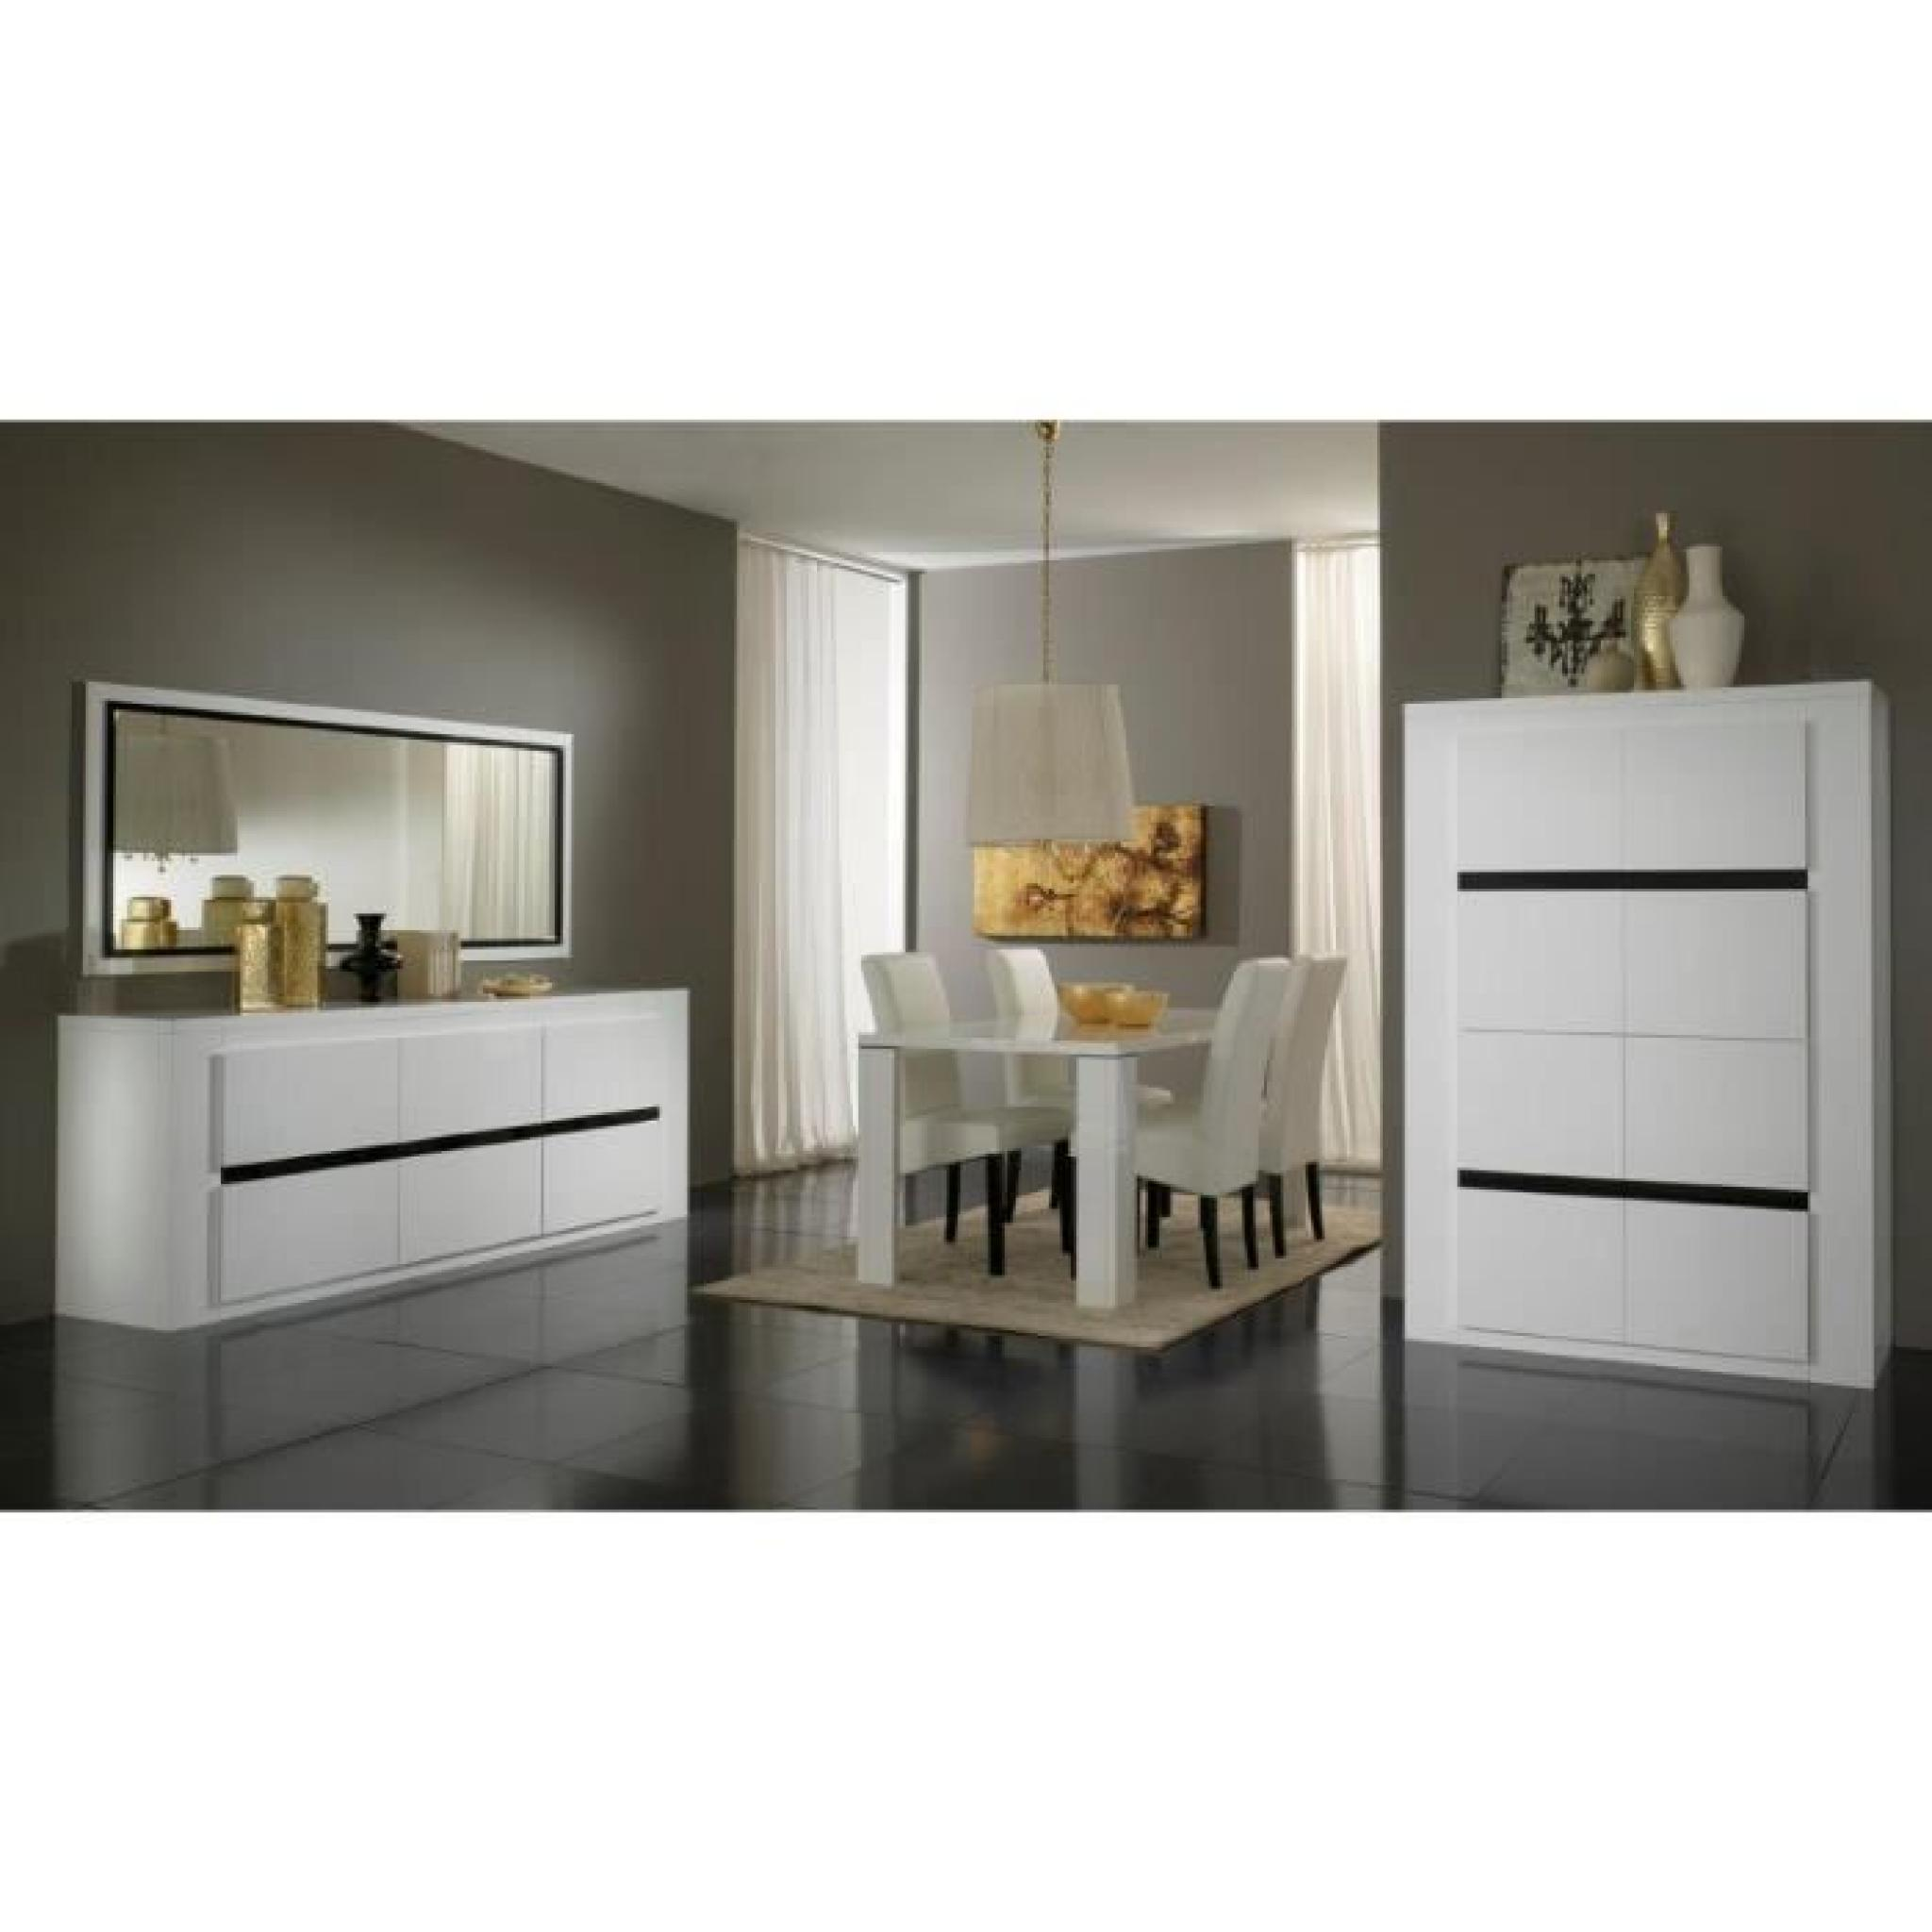 buffet salle manger ikea top merveilleux ikea chaise de salle a manger sale manger ikea pieds. Black Bedroom Furniture Sets. Home Design Ideas